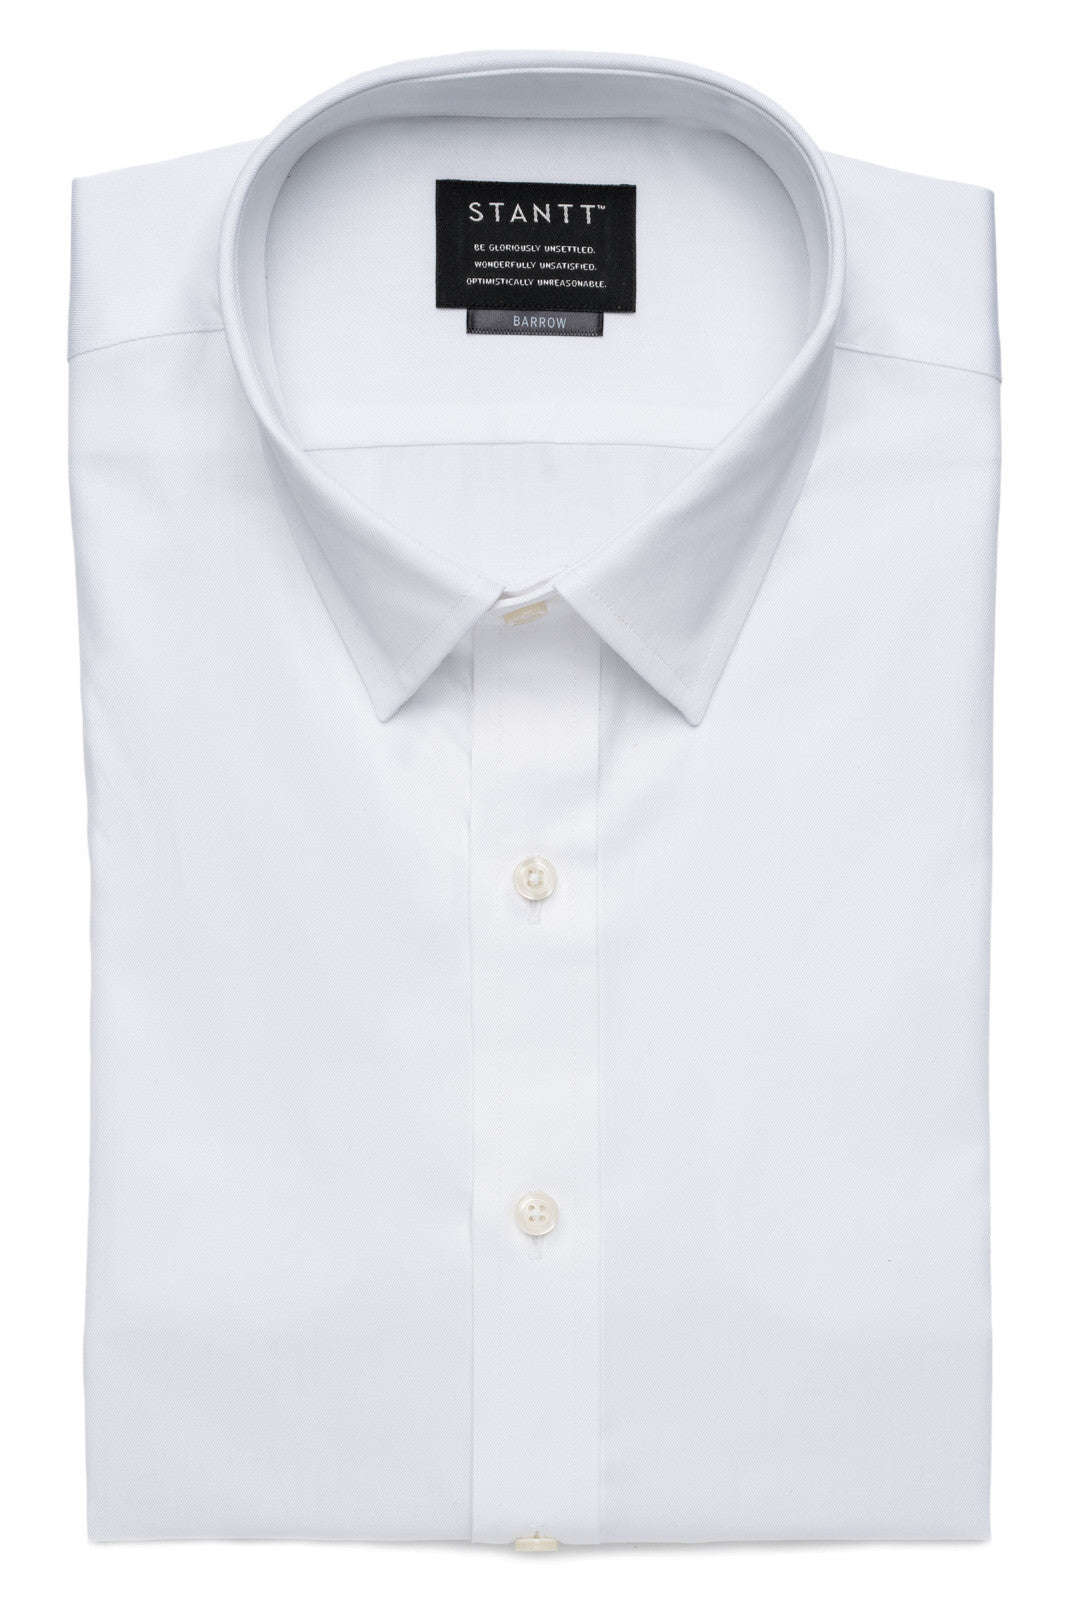 Fine White Twill: Button-Down Collar, Barrel Cuff